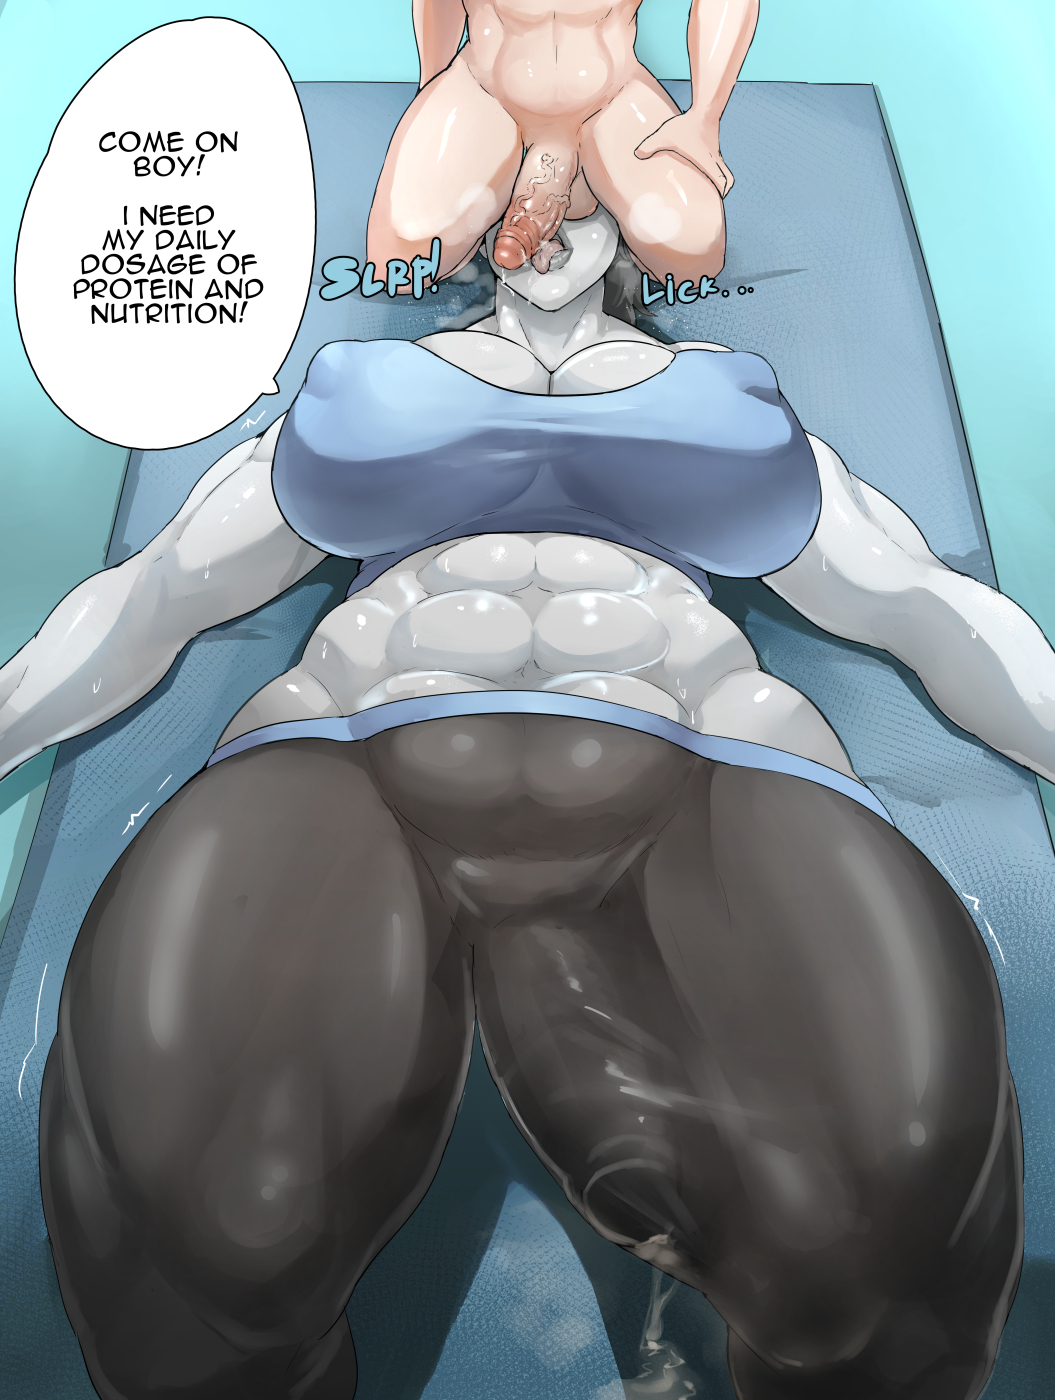 futa fit wii hentai trainer What are the rules of jinx